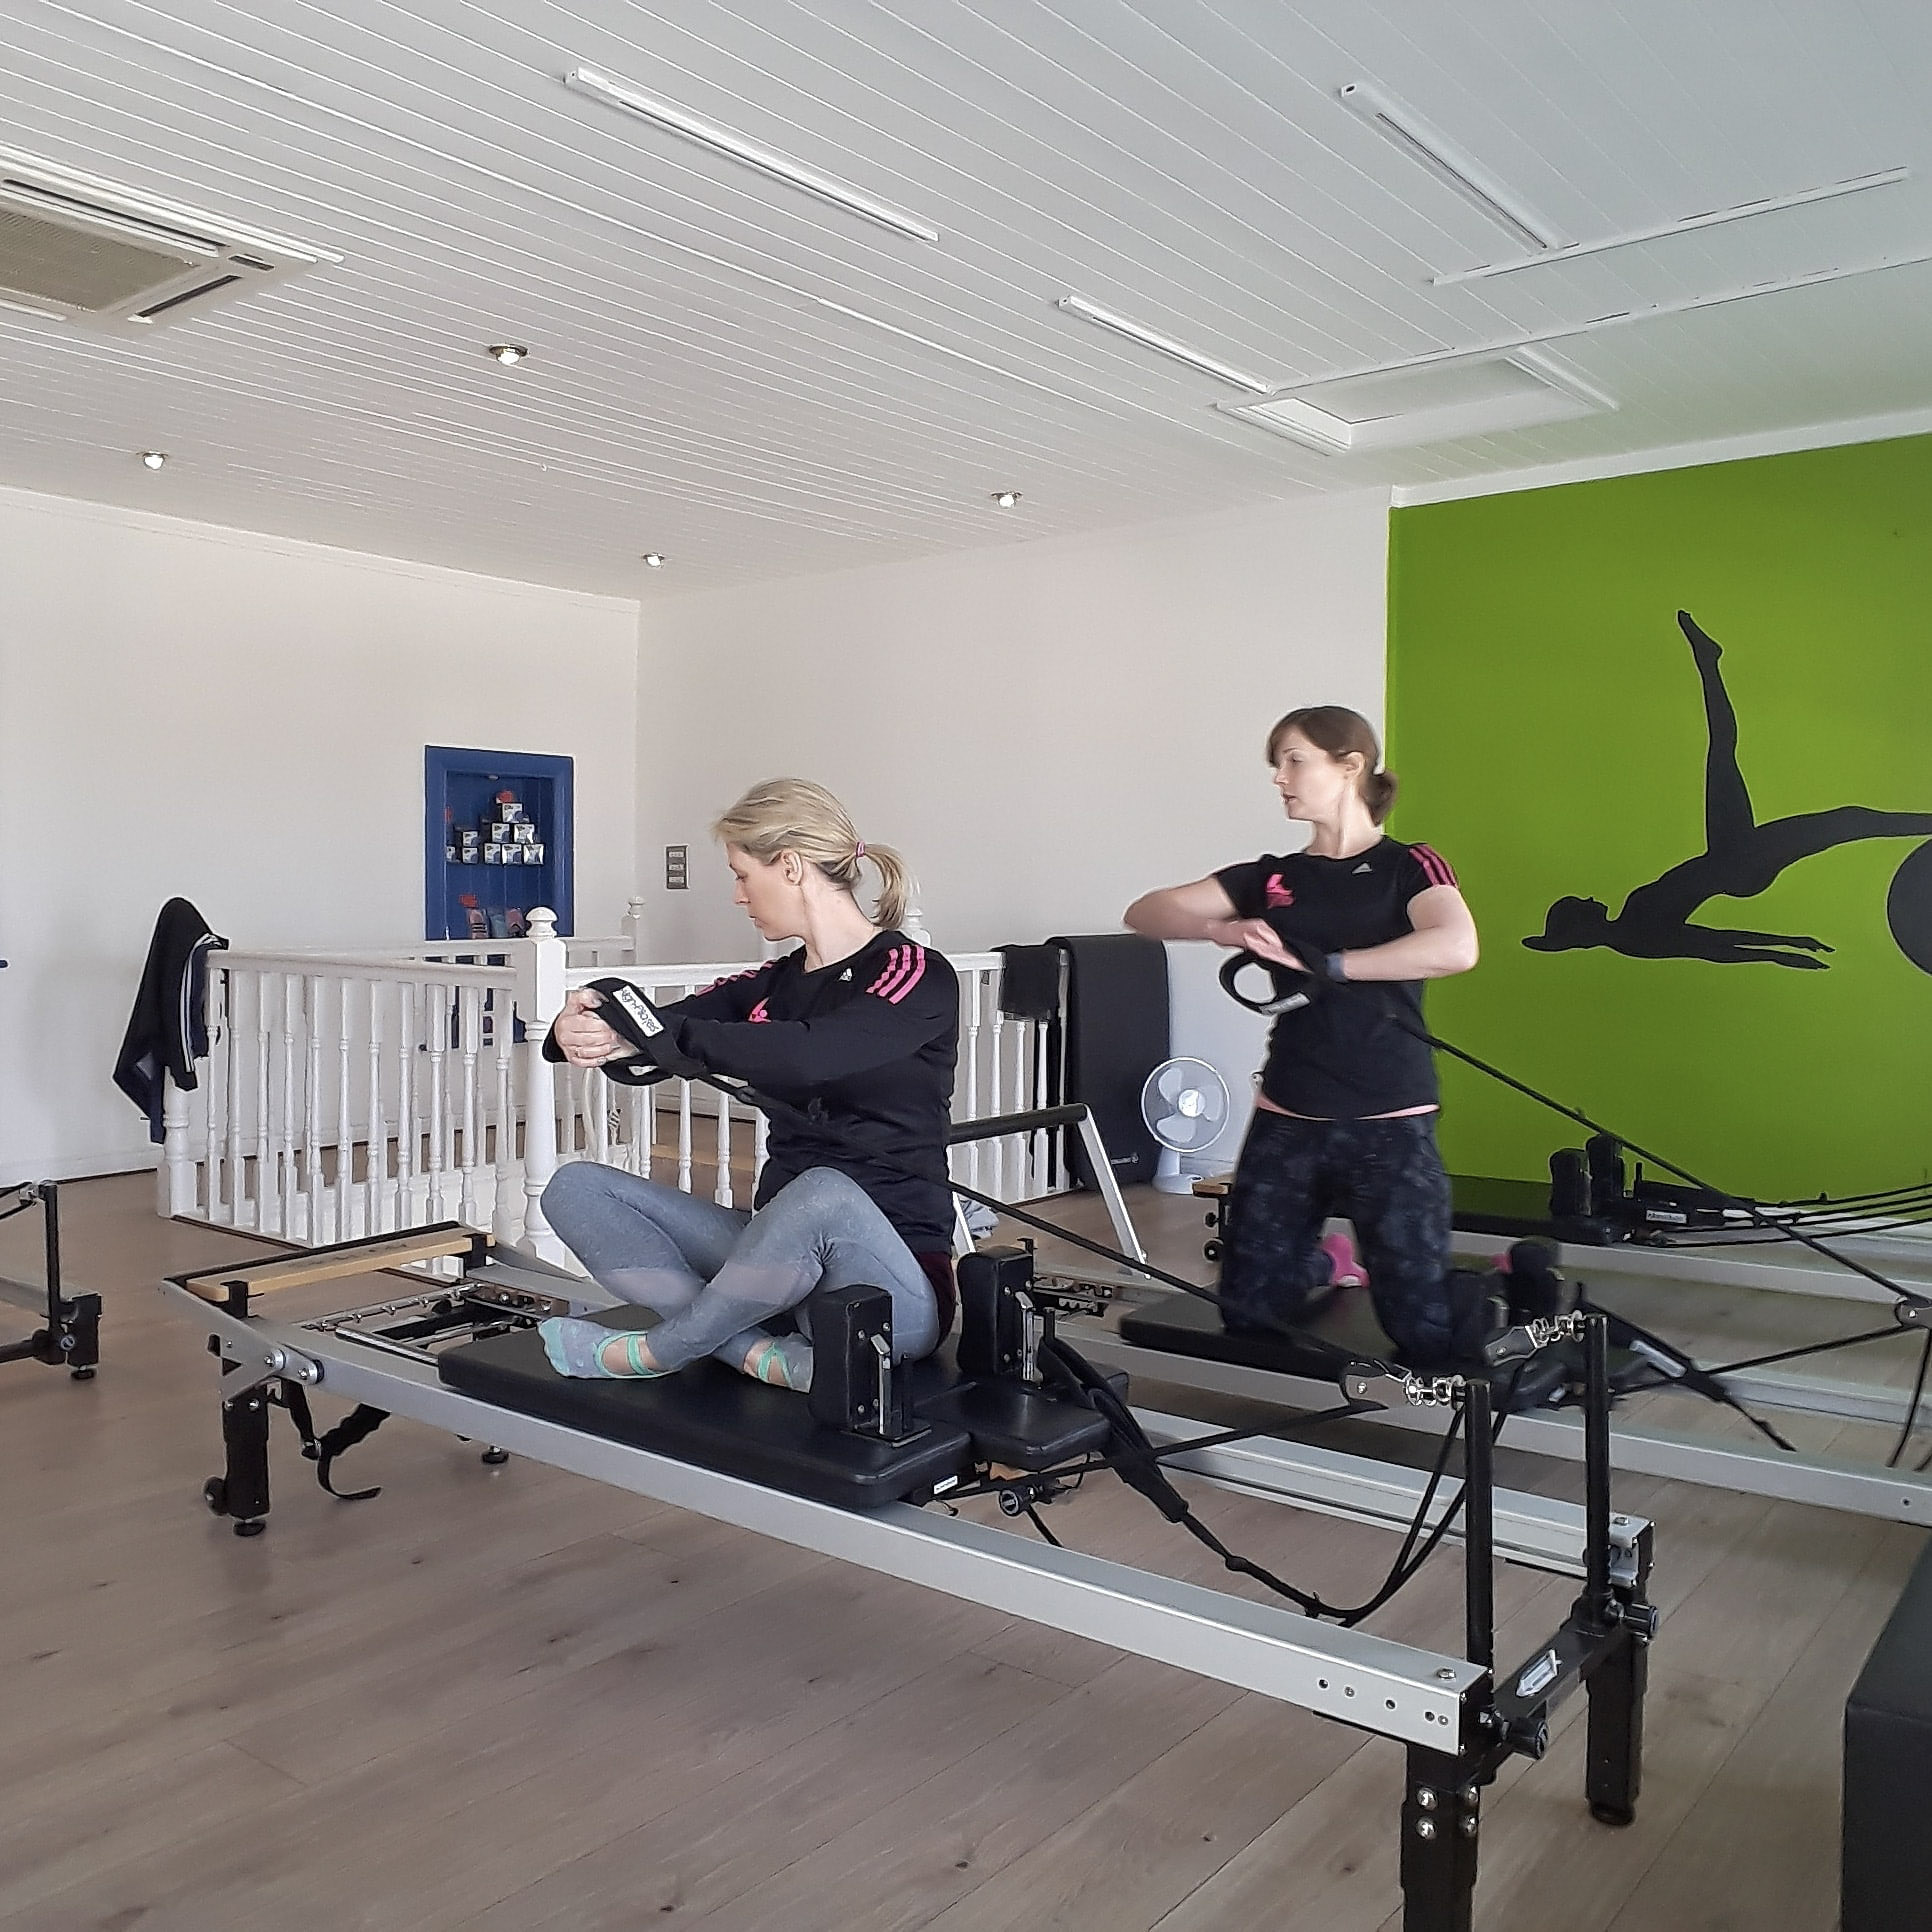 lauras pilates studio two woman doing pilates sitting up on reformer